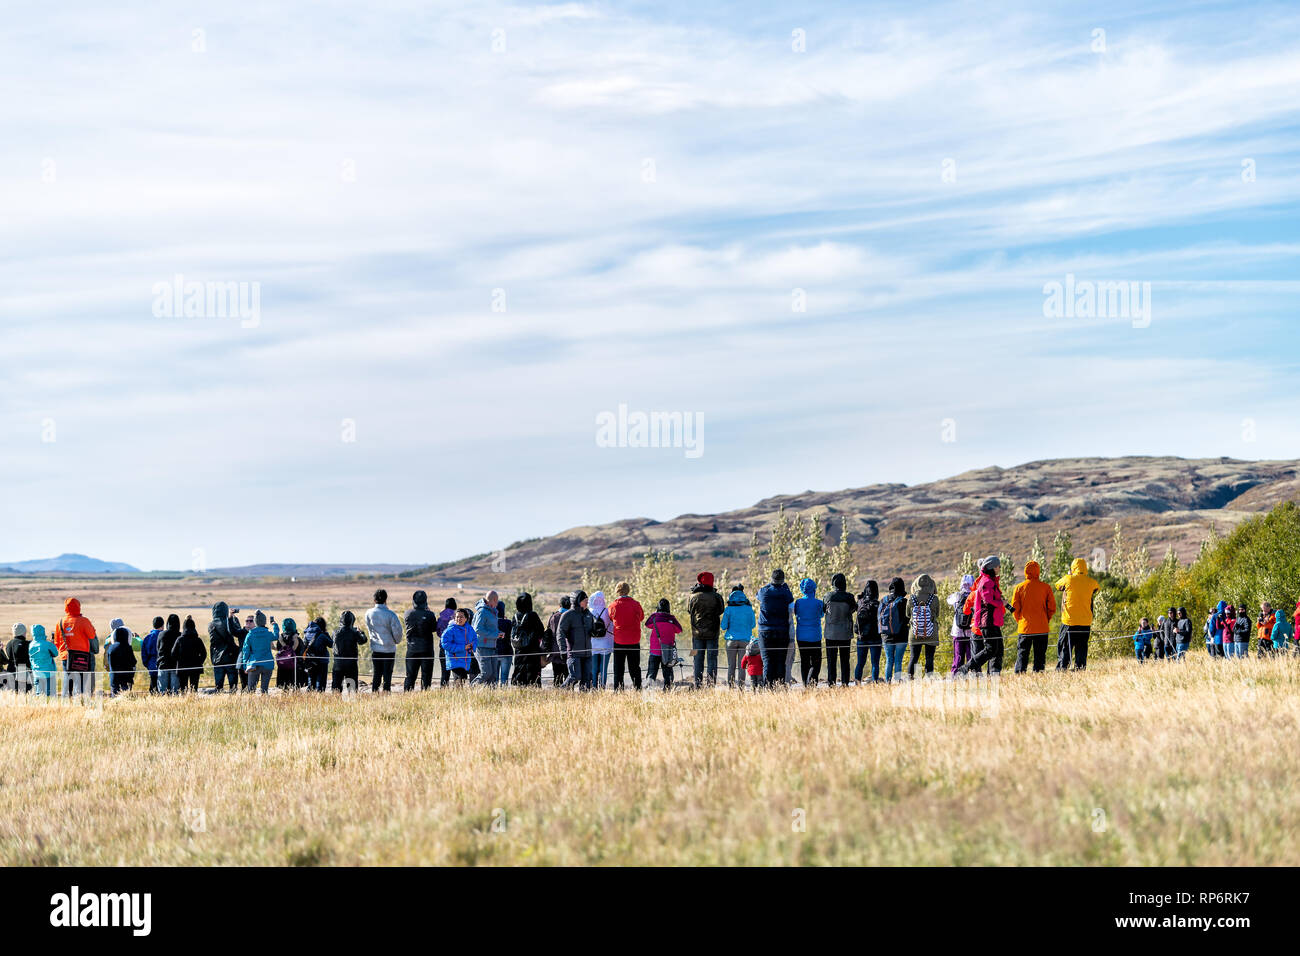 Haukadalur Valley, Iceland - September 19, 2018: Geyser landscape with back of many crowd people tourists waiting in Icelandic by Strokkur Geysir Hot  Stock Photo